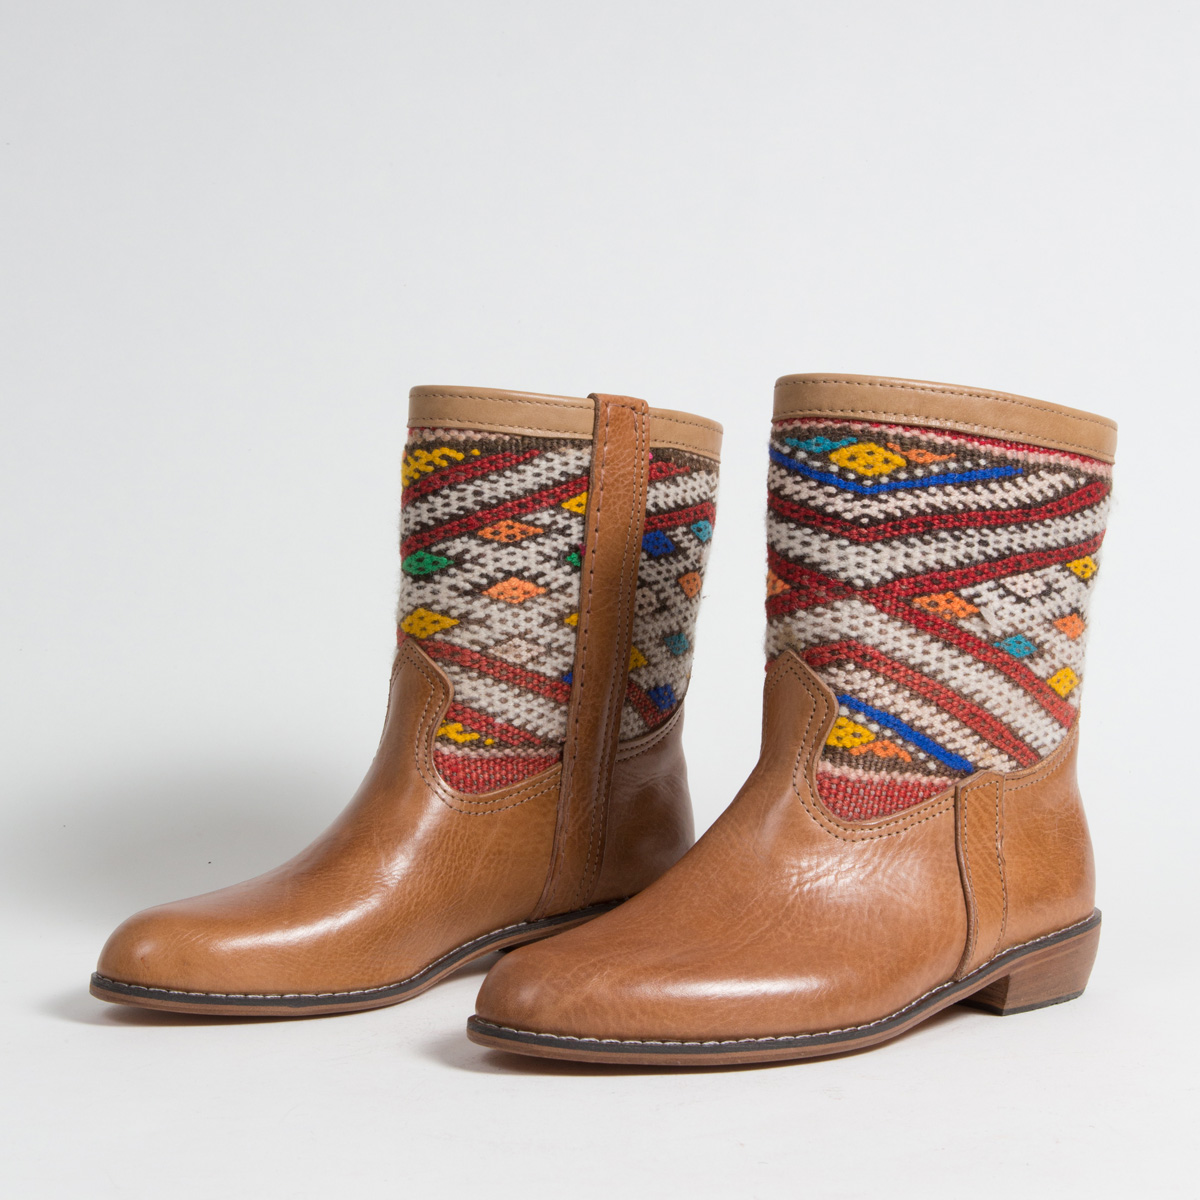 Bottines Kilim cuir mababouche artisanales (Réf. MCC1-40)